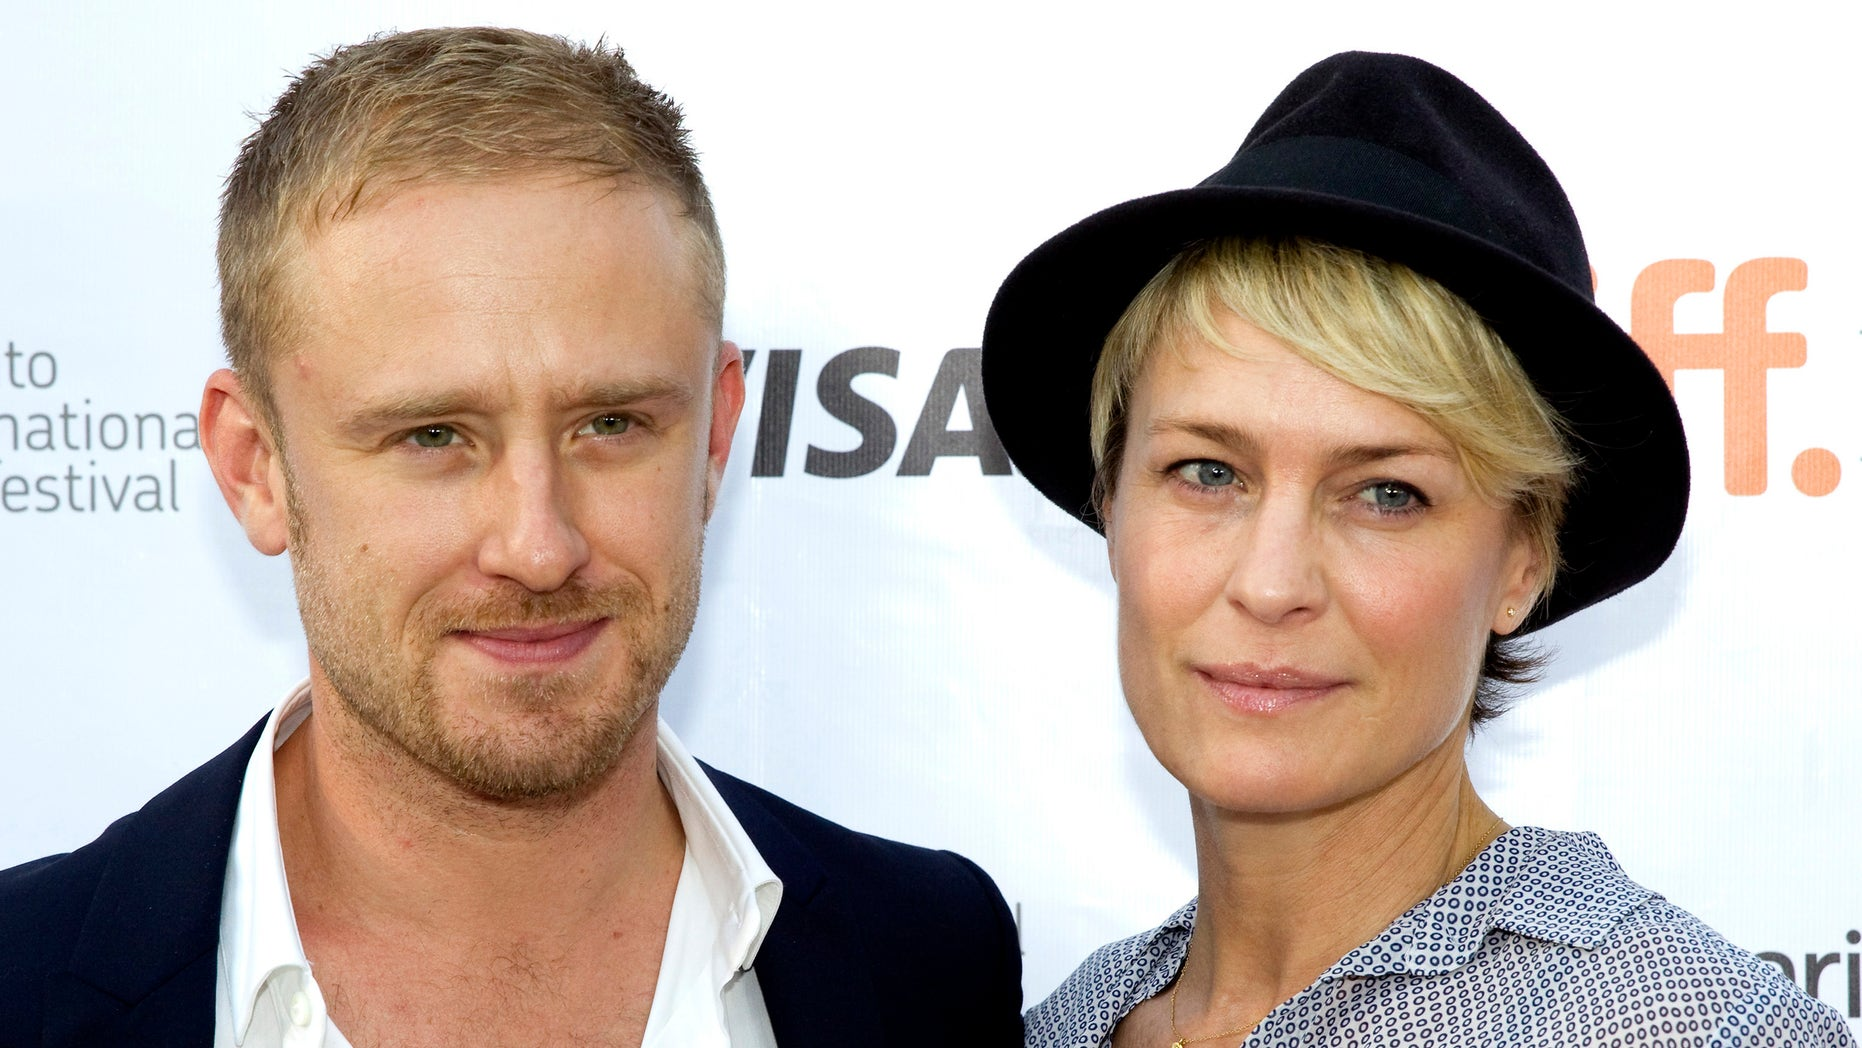 """September 10, 2013. Cast member Ben Foster and girlfriend Robin Wright arrive for the film premiere of """"Kill Your Darlings"""" at the 38th Toronto International Film Festival in Toronto."""